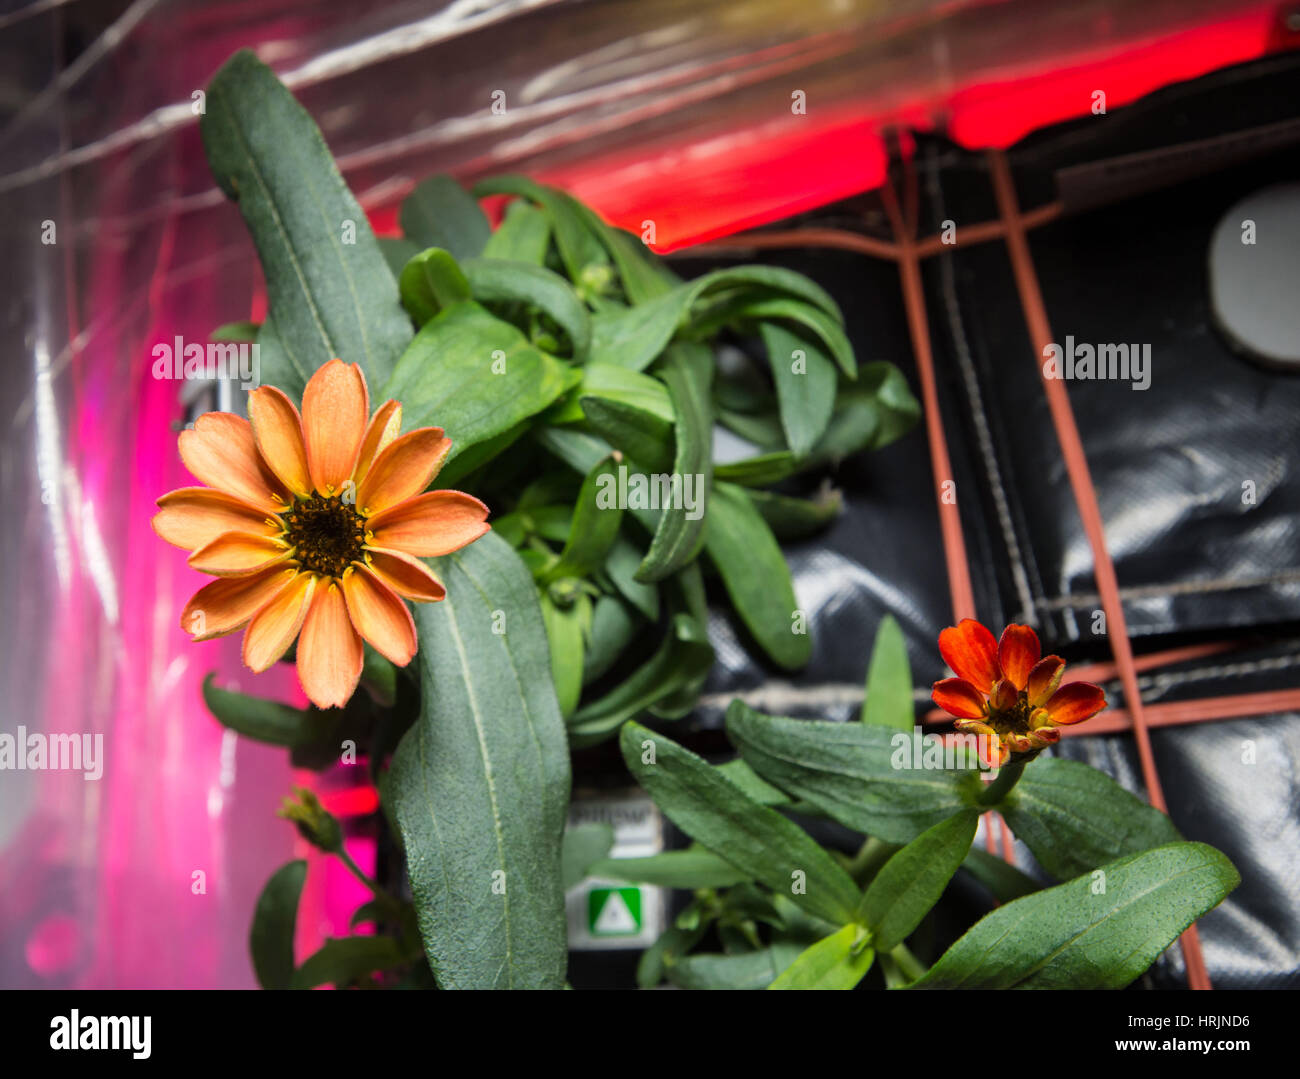 Zinnia Grown Aboard ISS - Stock Image